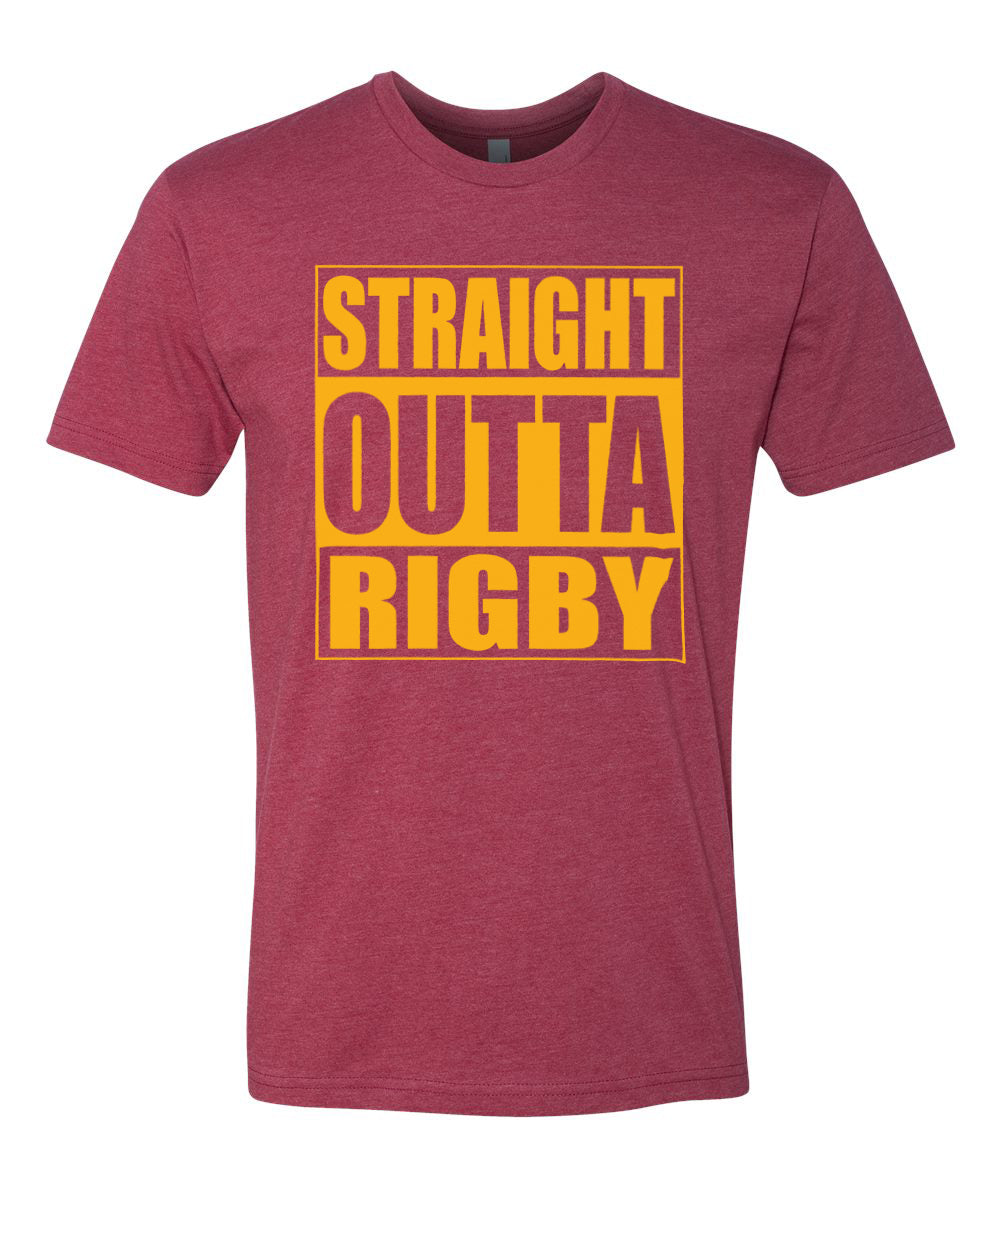 RIGBY HS – Next Level Fitted Crew Tee – Straight Outta Rigby (Gold/Maroon)